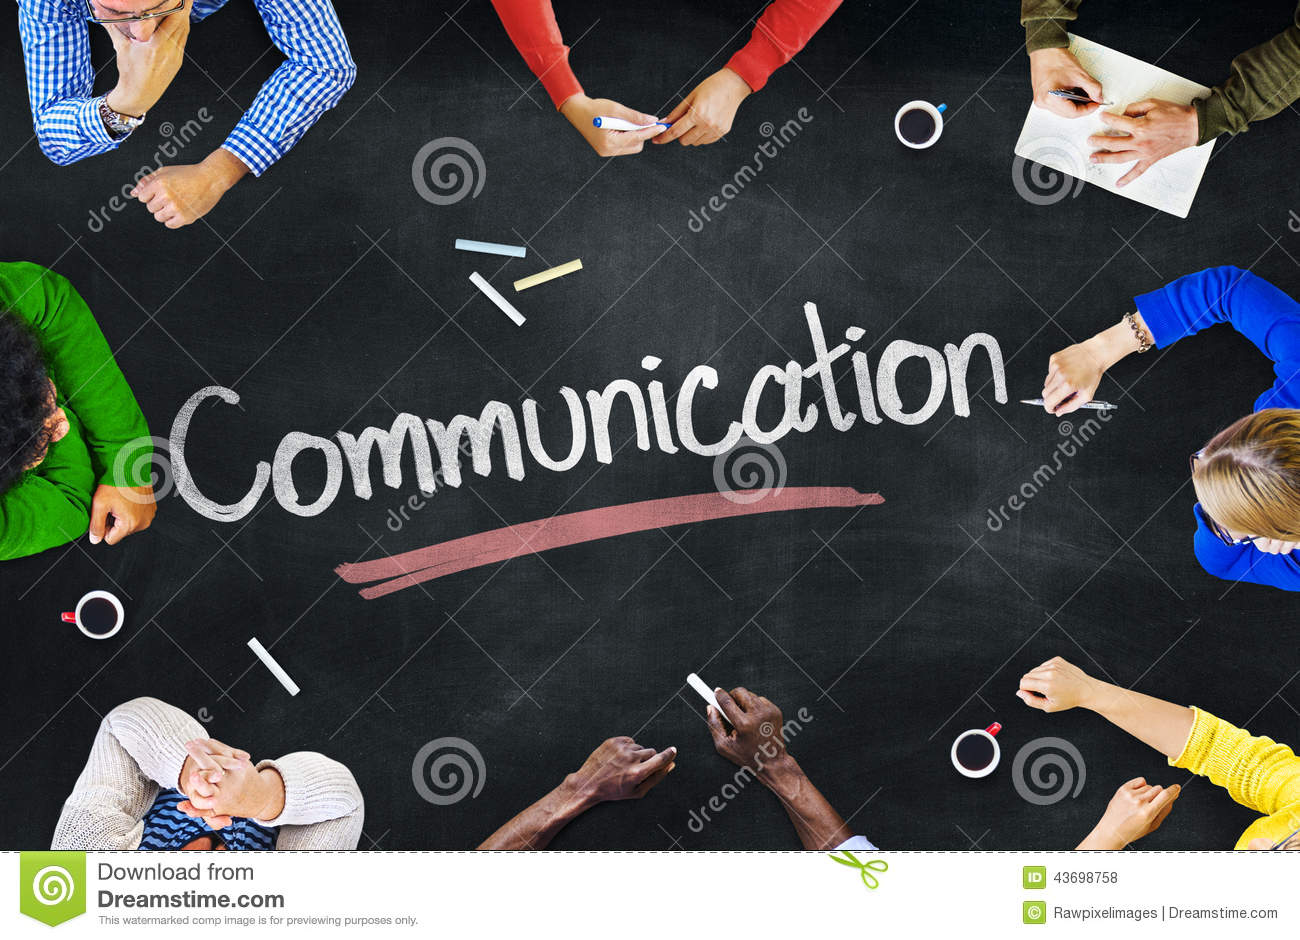 Group of People with Communication Concepts